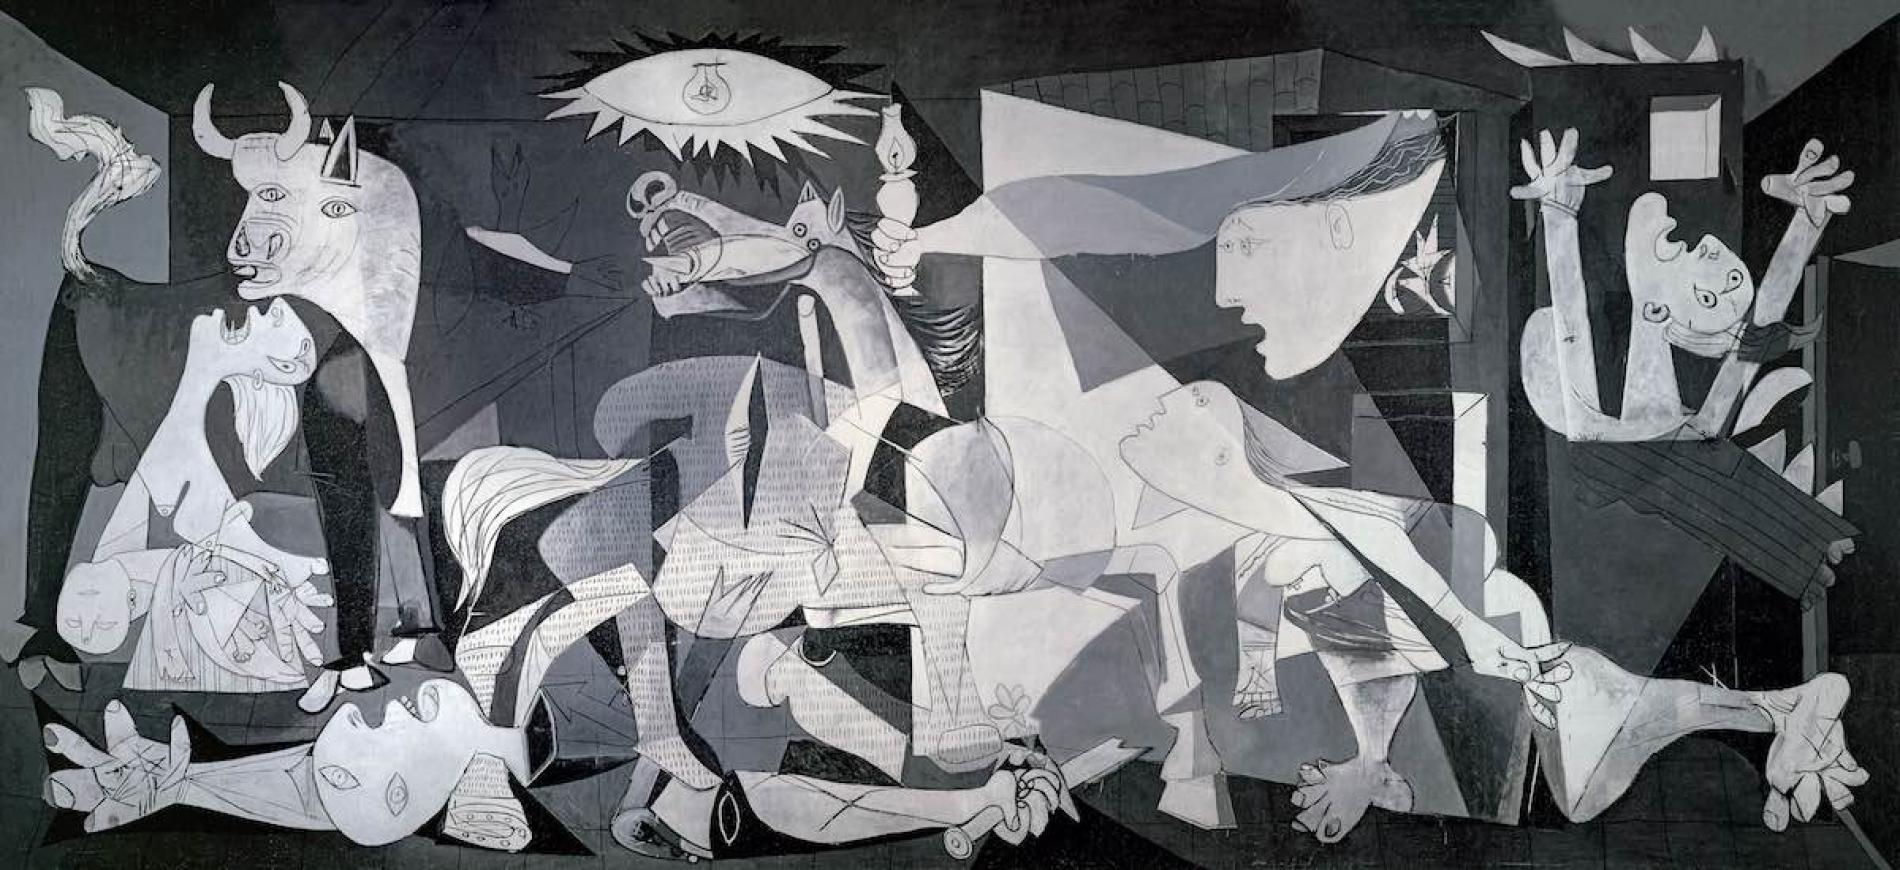 Main_Guernica_BAT-10313.adapt.1900.1